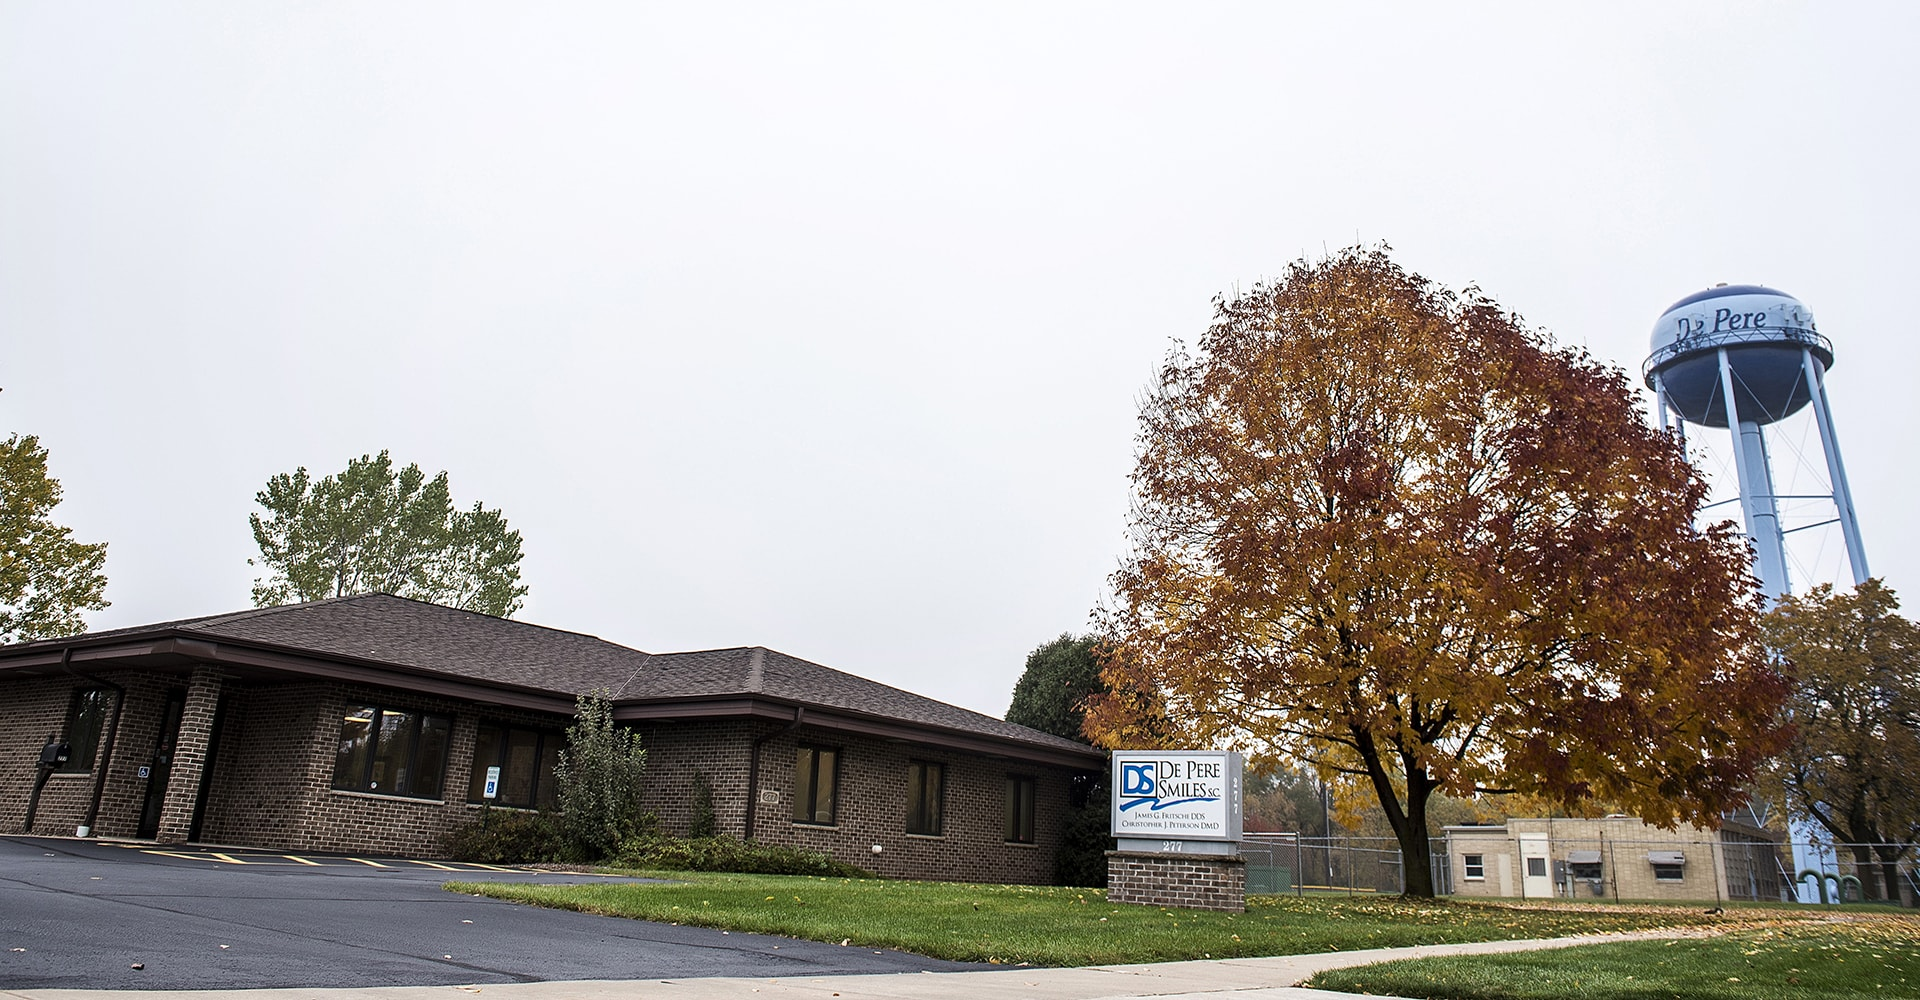 De Pere Smiles building in De Pere, WI - Contact Us today!